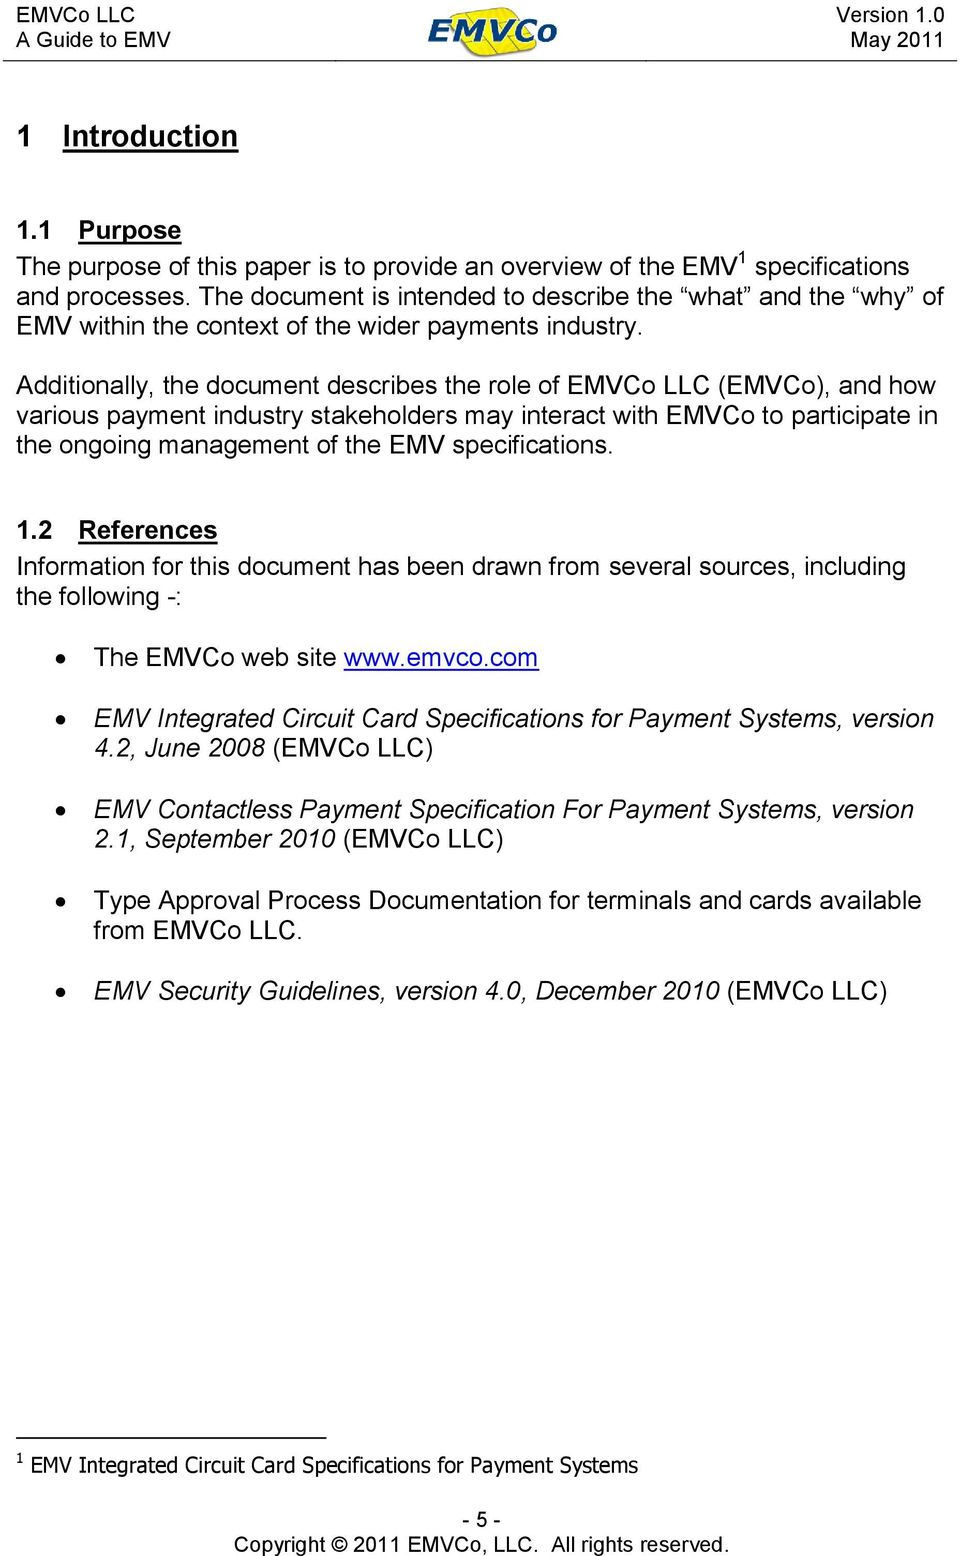 Additionally, the document describes the role of EMVCo LLC (EMVCo), and how various payment industry stakeholders may interact with EMVCo to participate in the ongoing management of the EMV